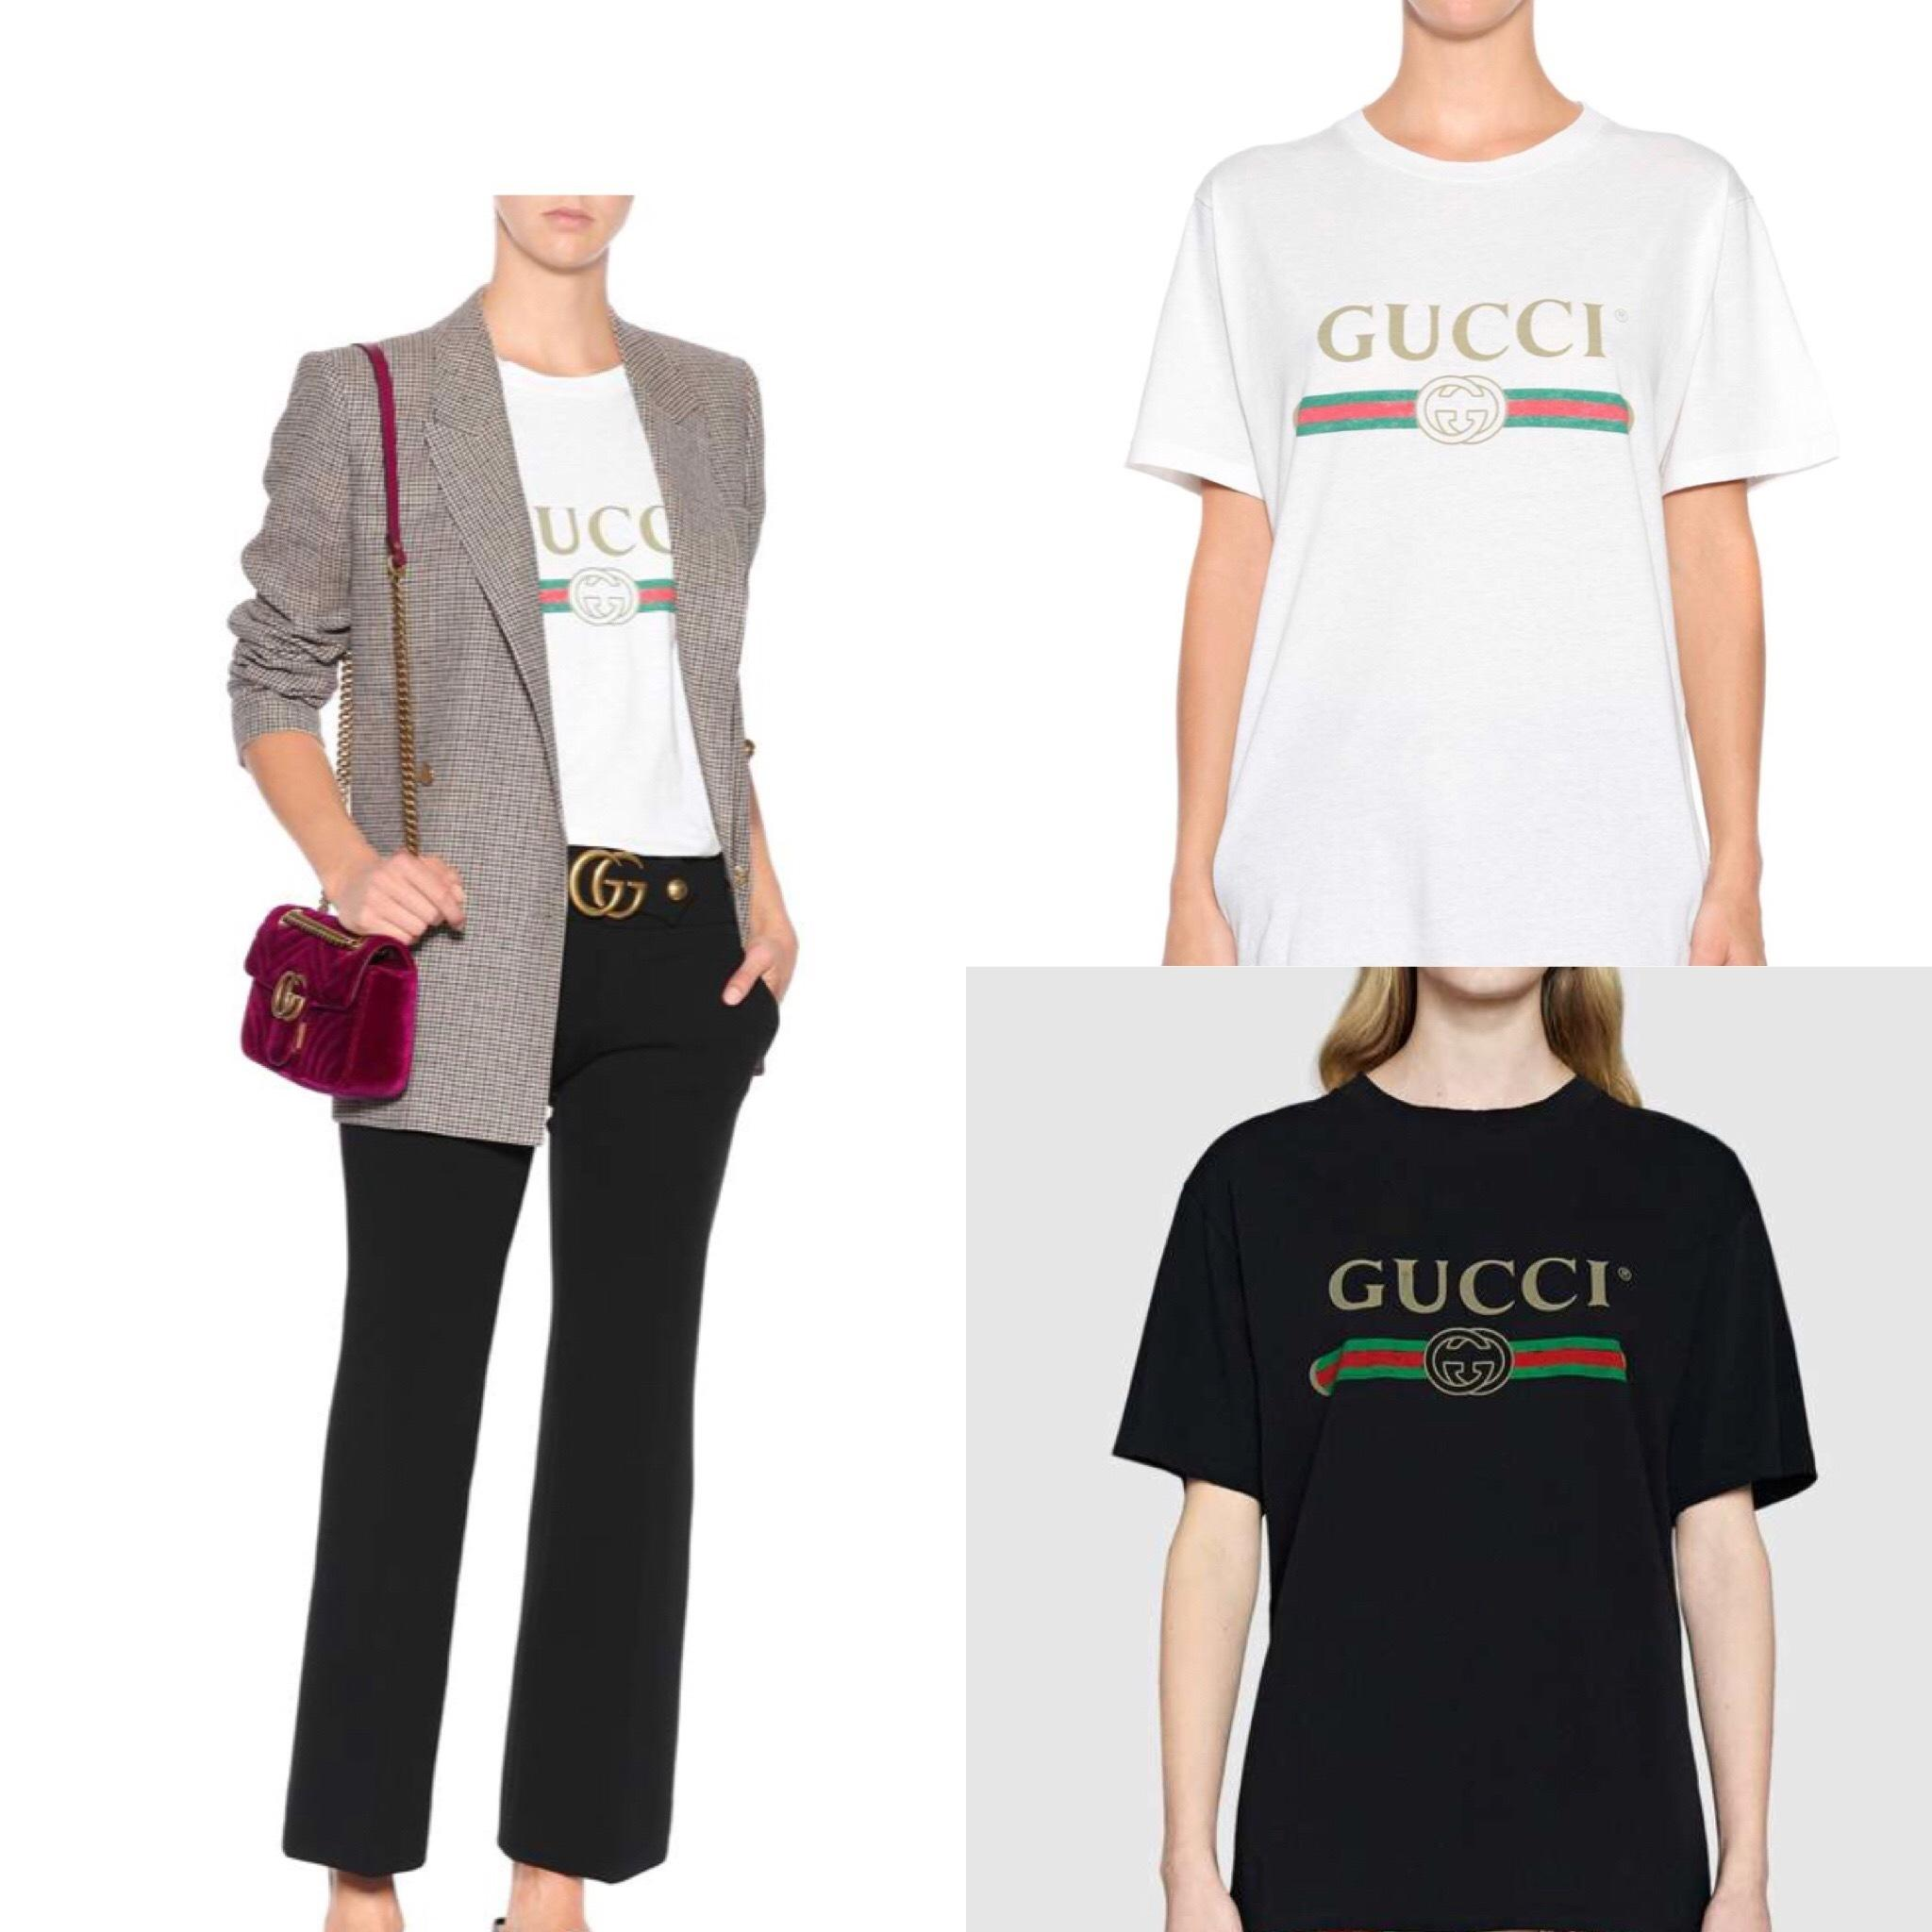 c066e9f50f1 Gucci Oversize T-shirt with Gucci logo in Black size S  8